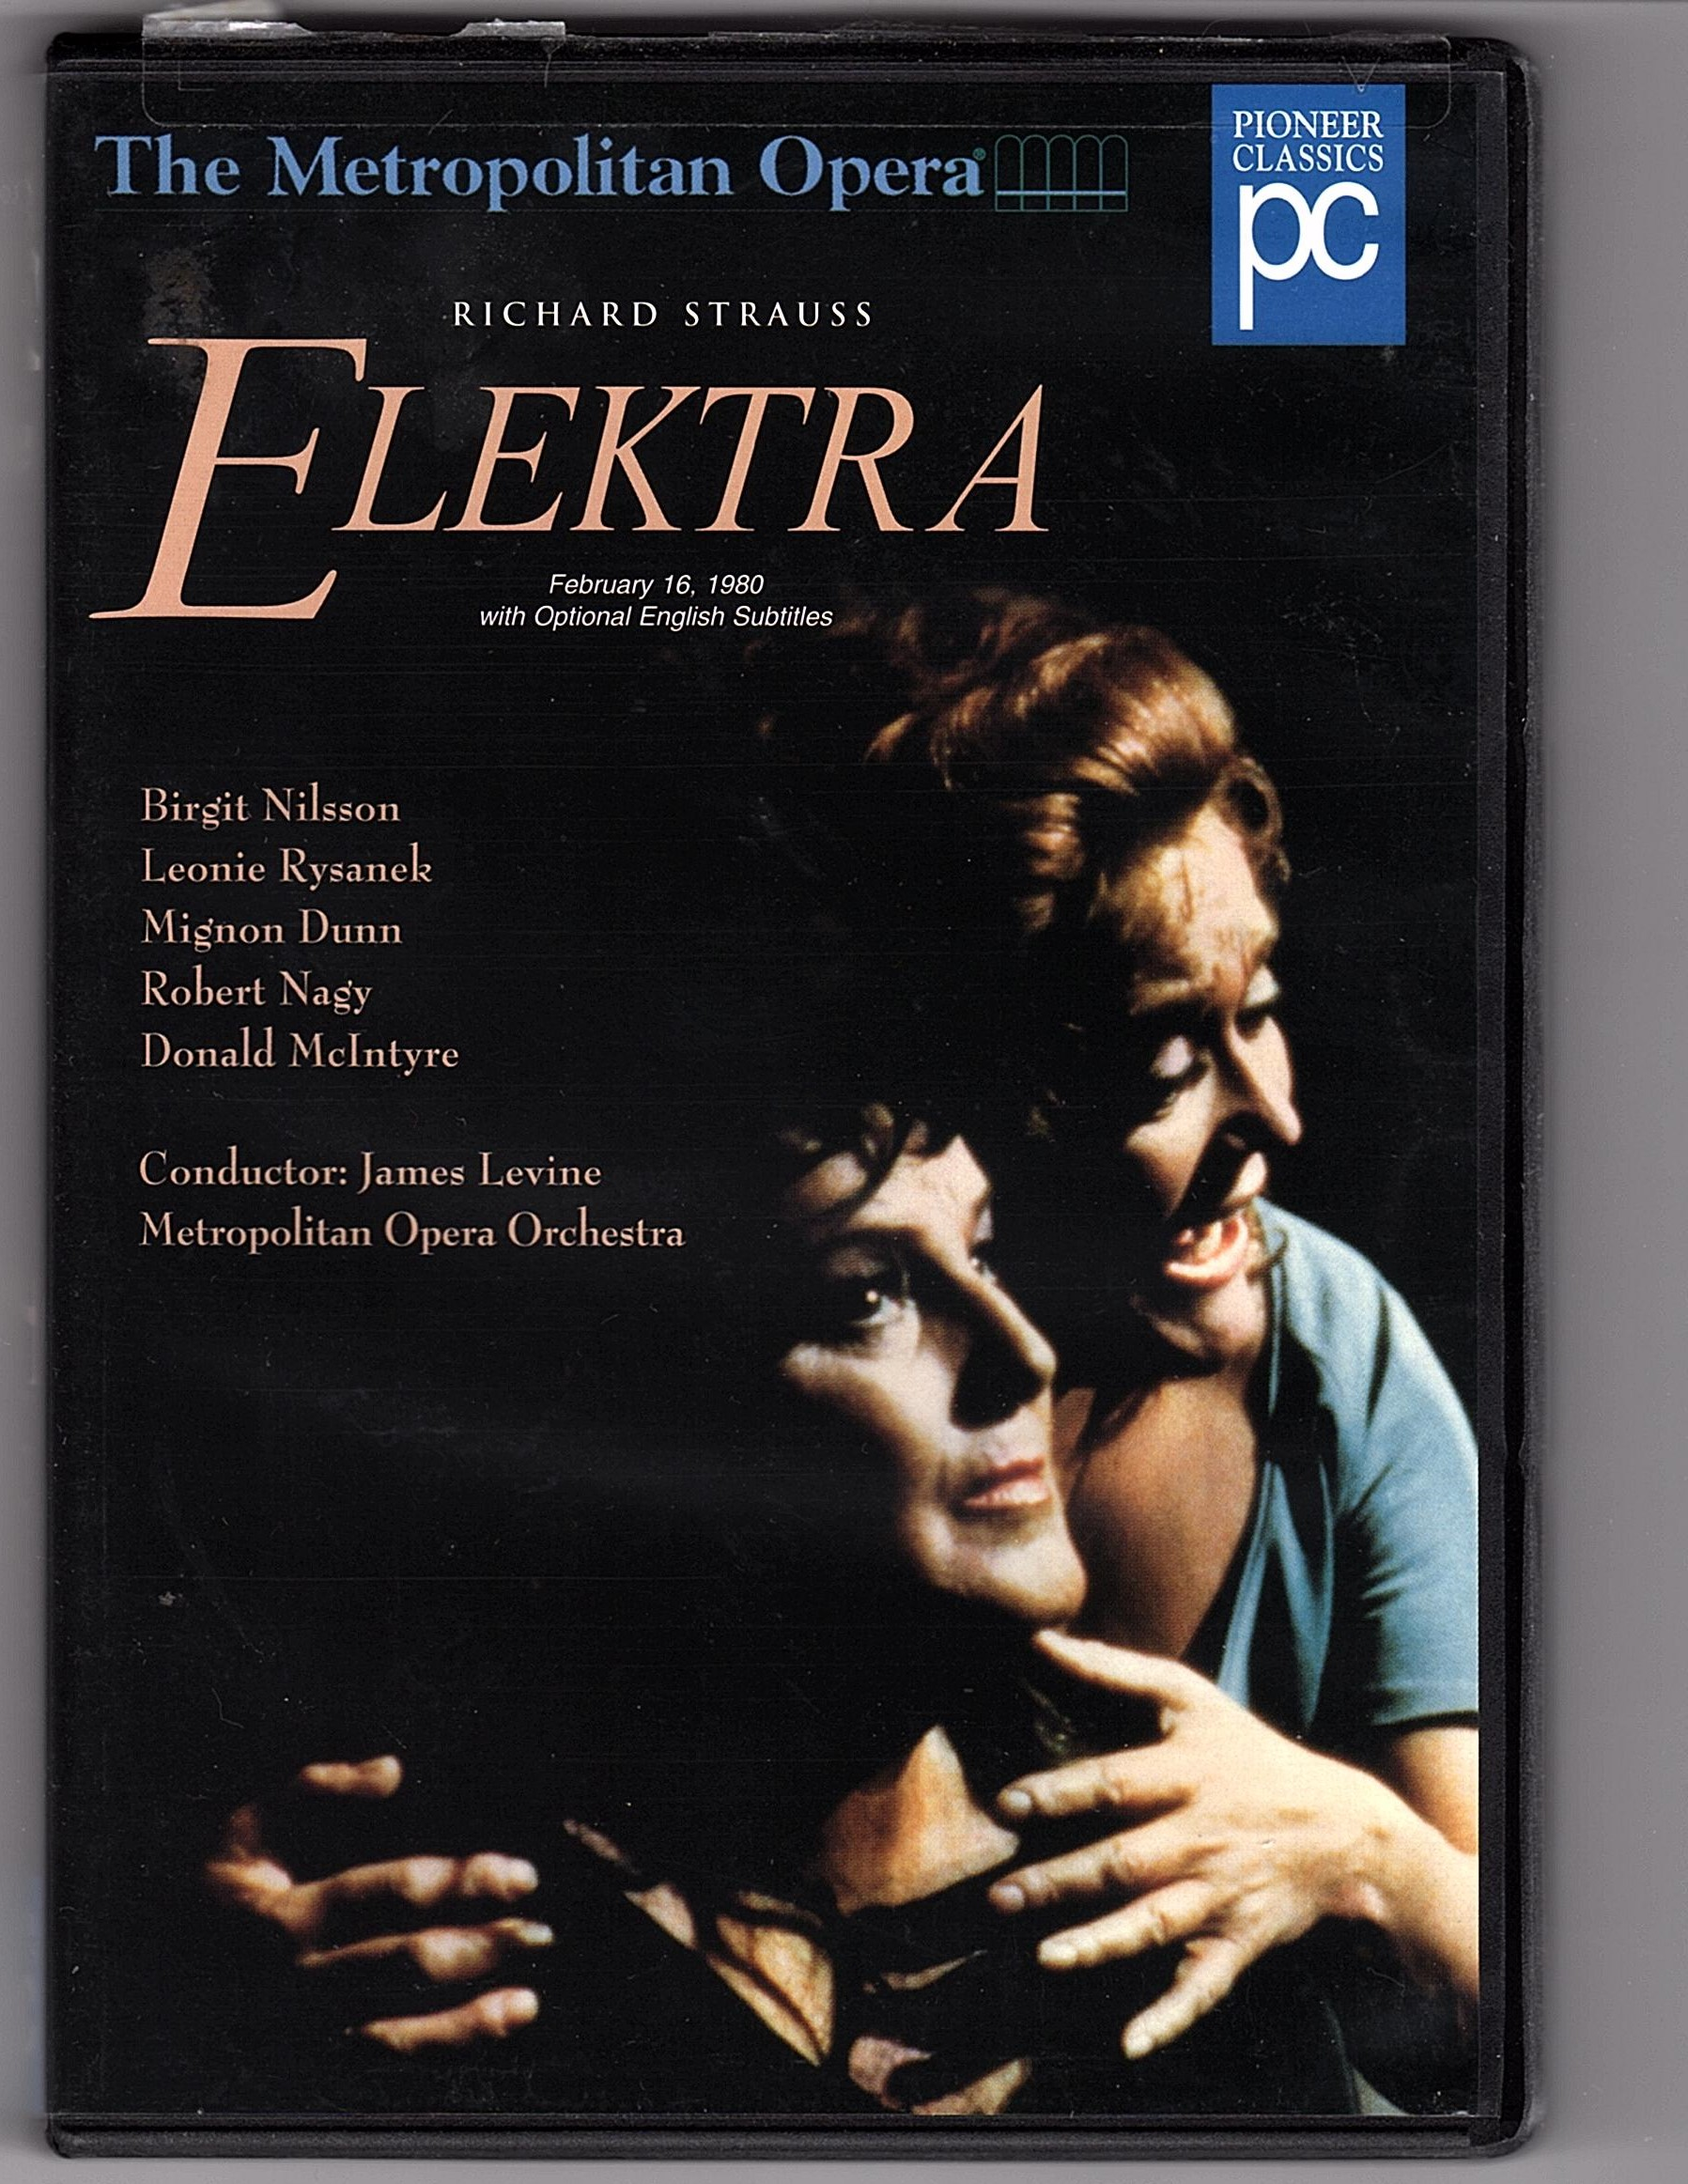 Image for Richard Strauss: Elektra: Metropolitan Opera